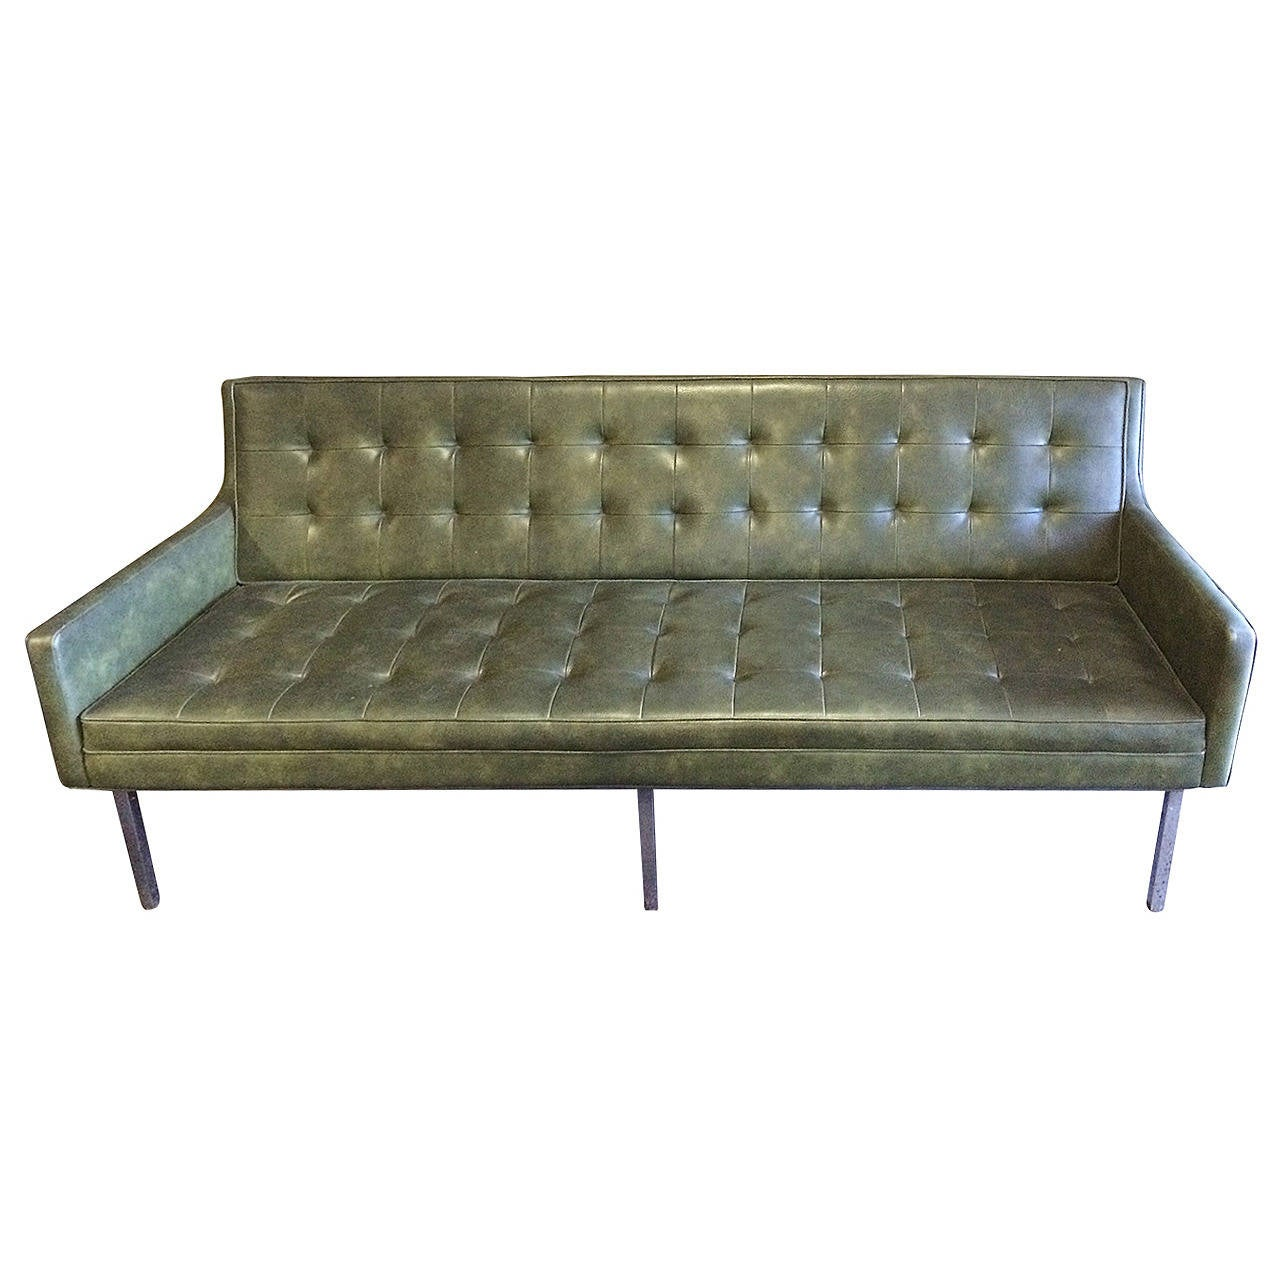 Mid century modern tufted sofa and chair set for sale at for Tufted couches for sale